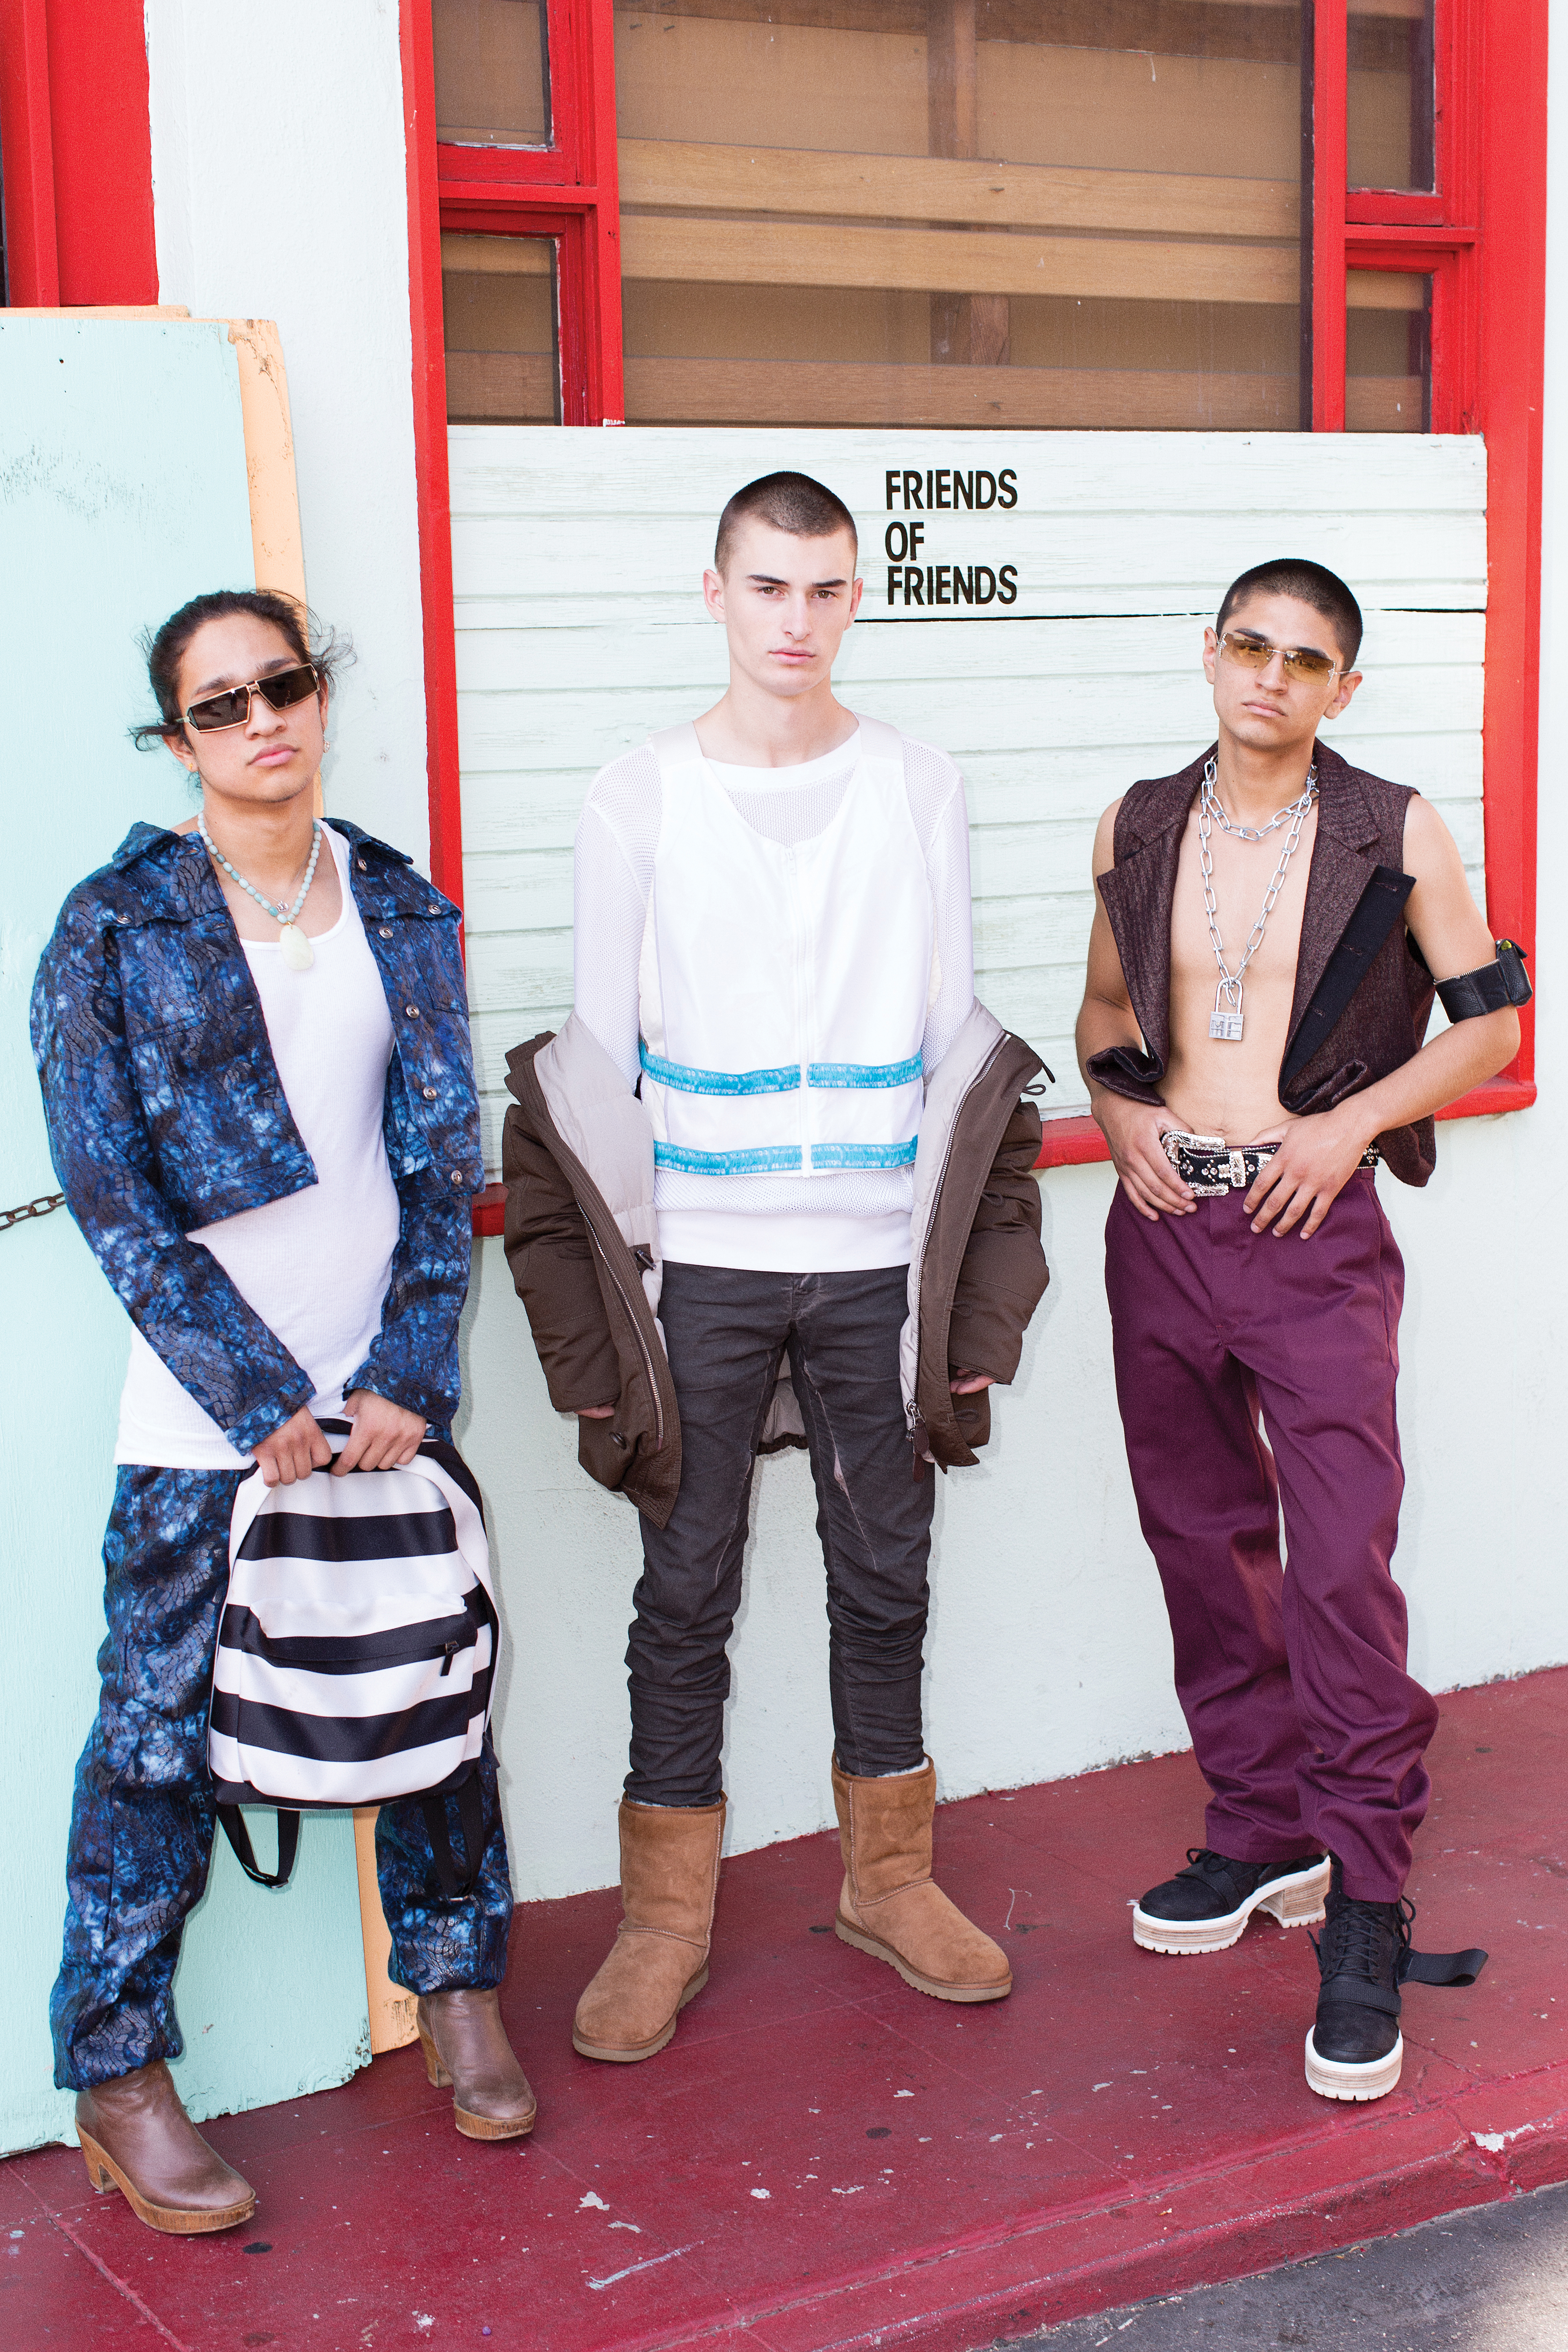 Steven Crispin, Frank Nadolny and Derrick Garcia Bonding over fashion, the teens put together crazy looks with pieces from FUBU, Cottweiler, Rick Owens, Ann Demeulemeester, Dickies and even metal chains from Lowe's.